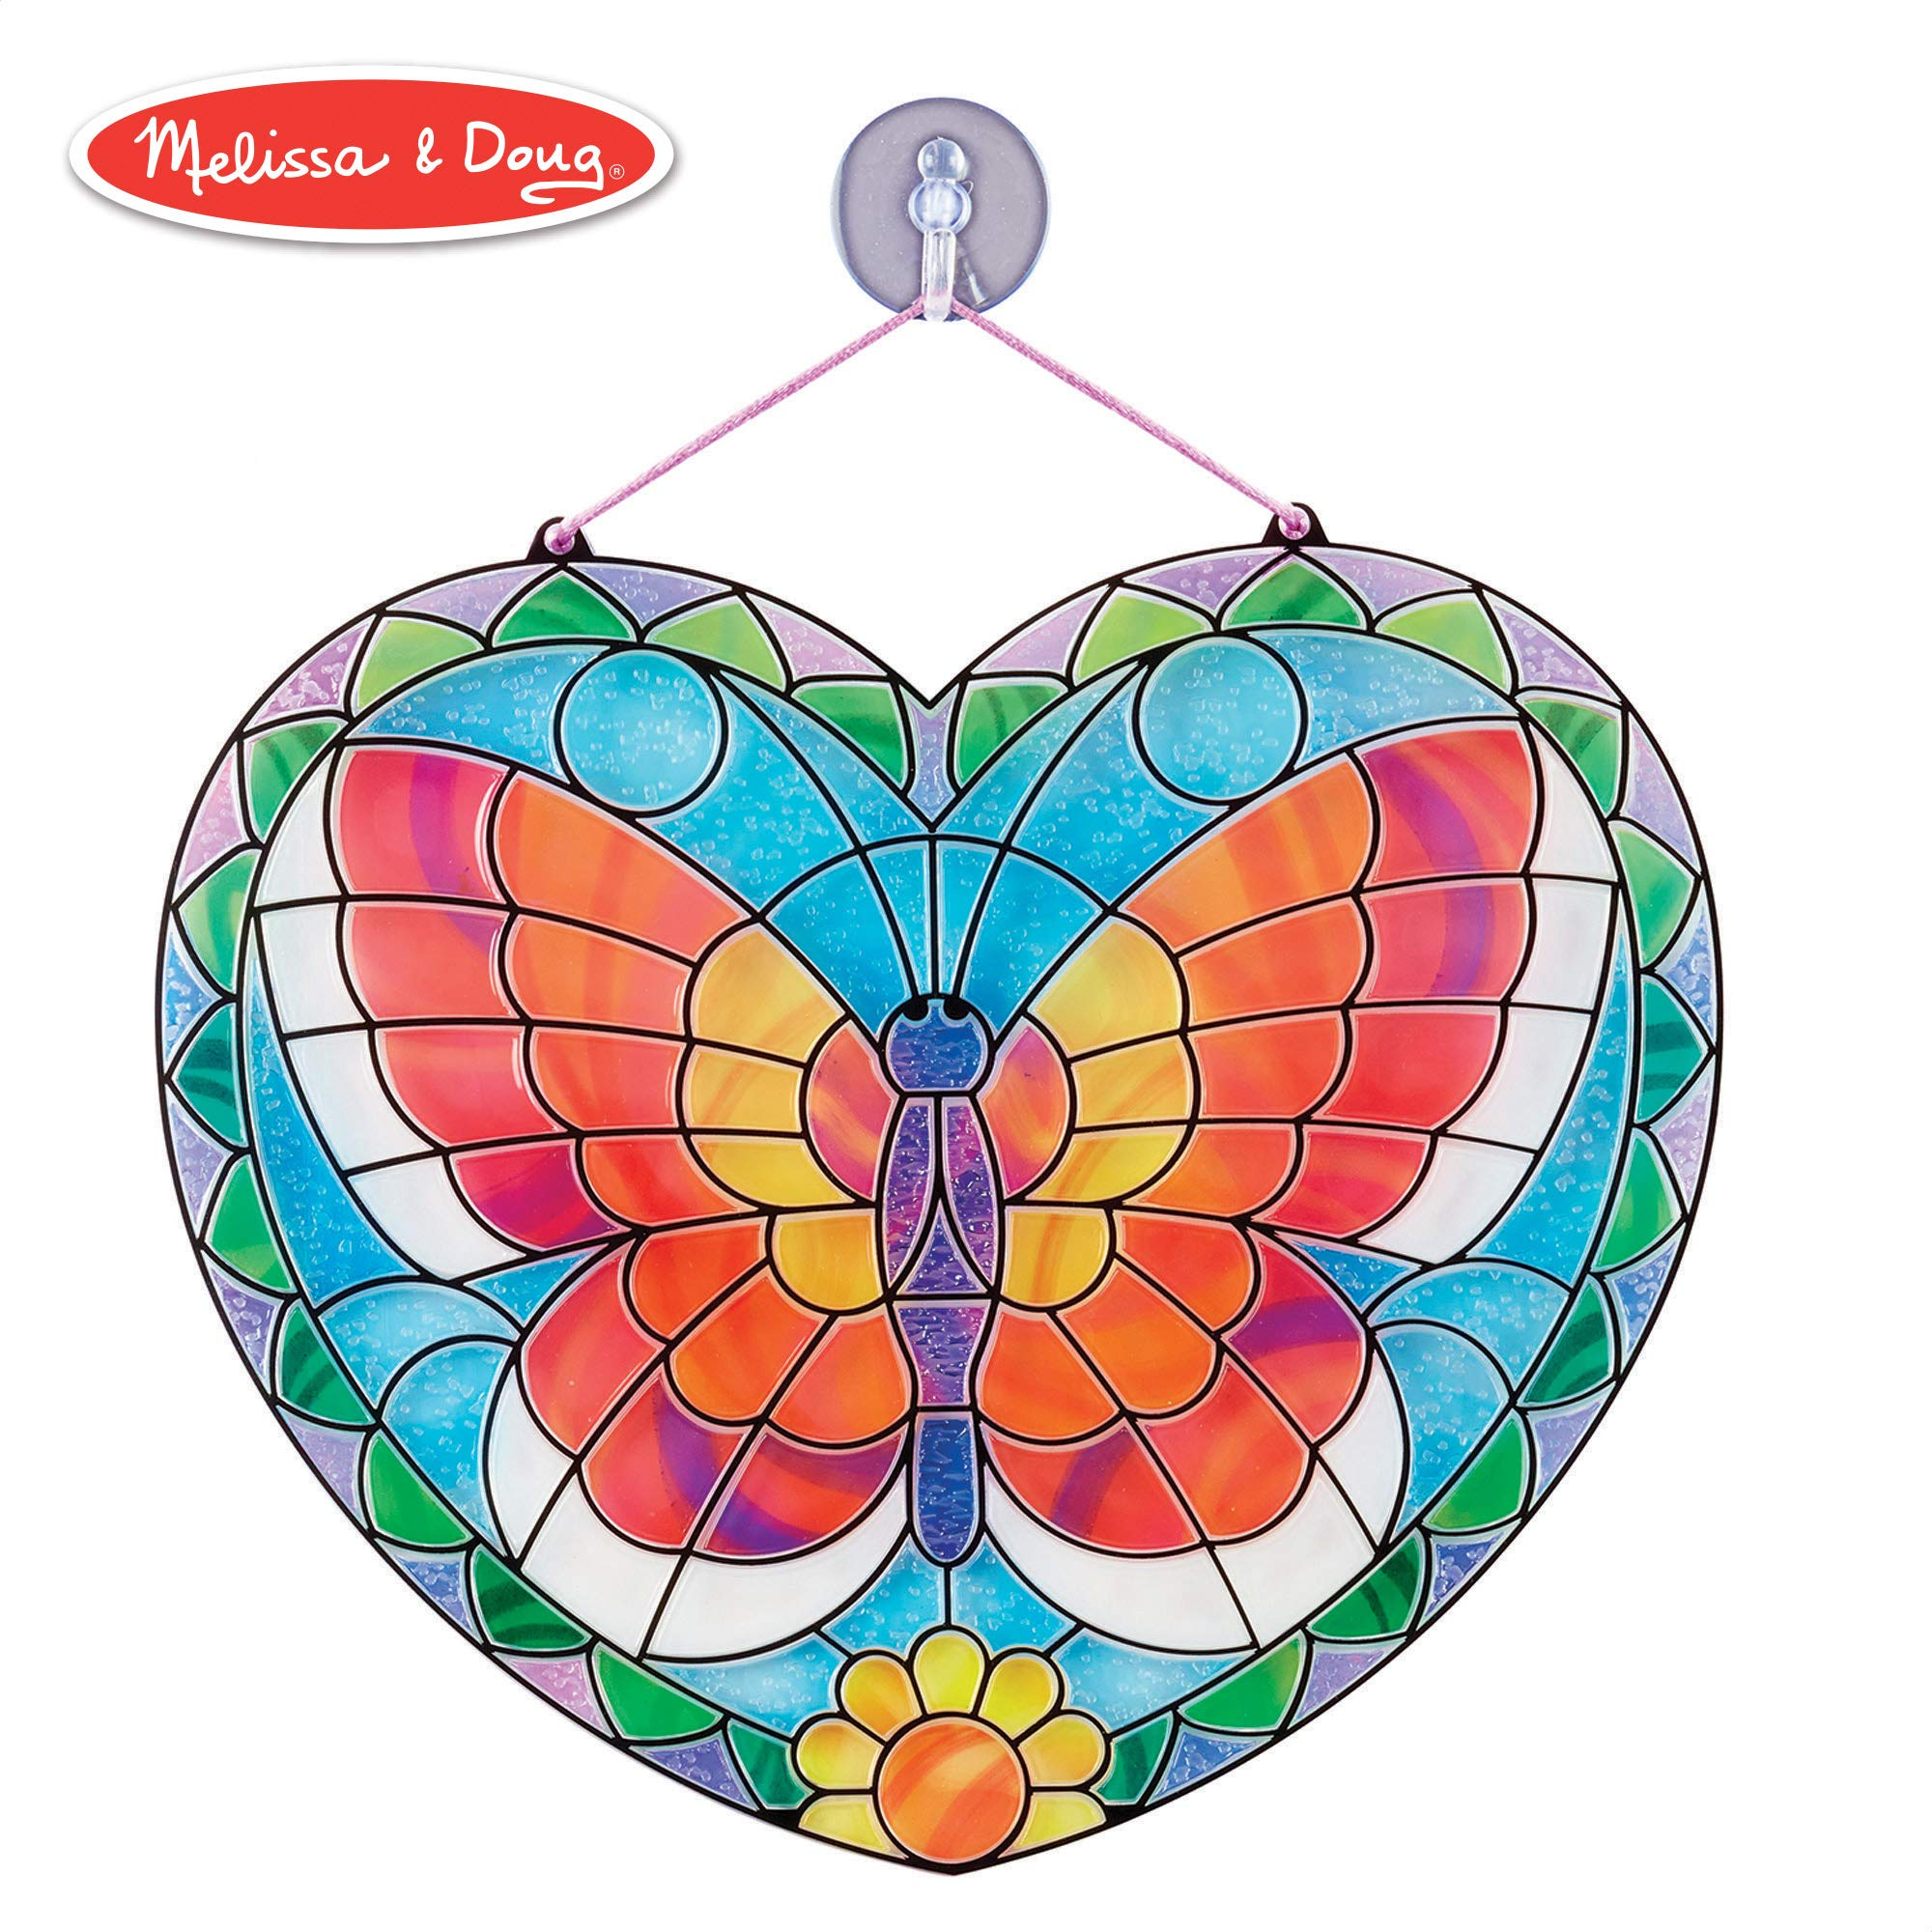 "Melissa & Doug Stained Glass Made Easy Activity Kit, Arts and Crafts, Develops Problem Solving Skills, Butterfly, 140+ Stickers, 10.5"" H x 10"" W x 0.25"" L, Multi-color"